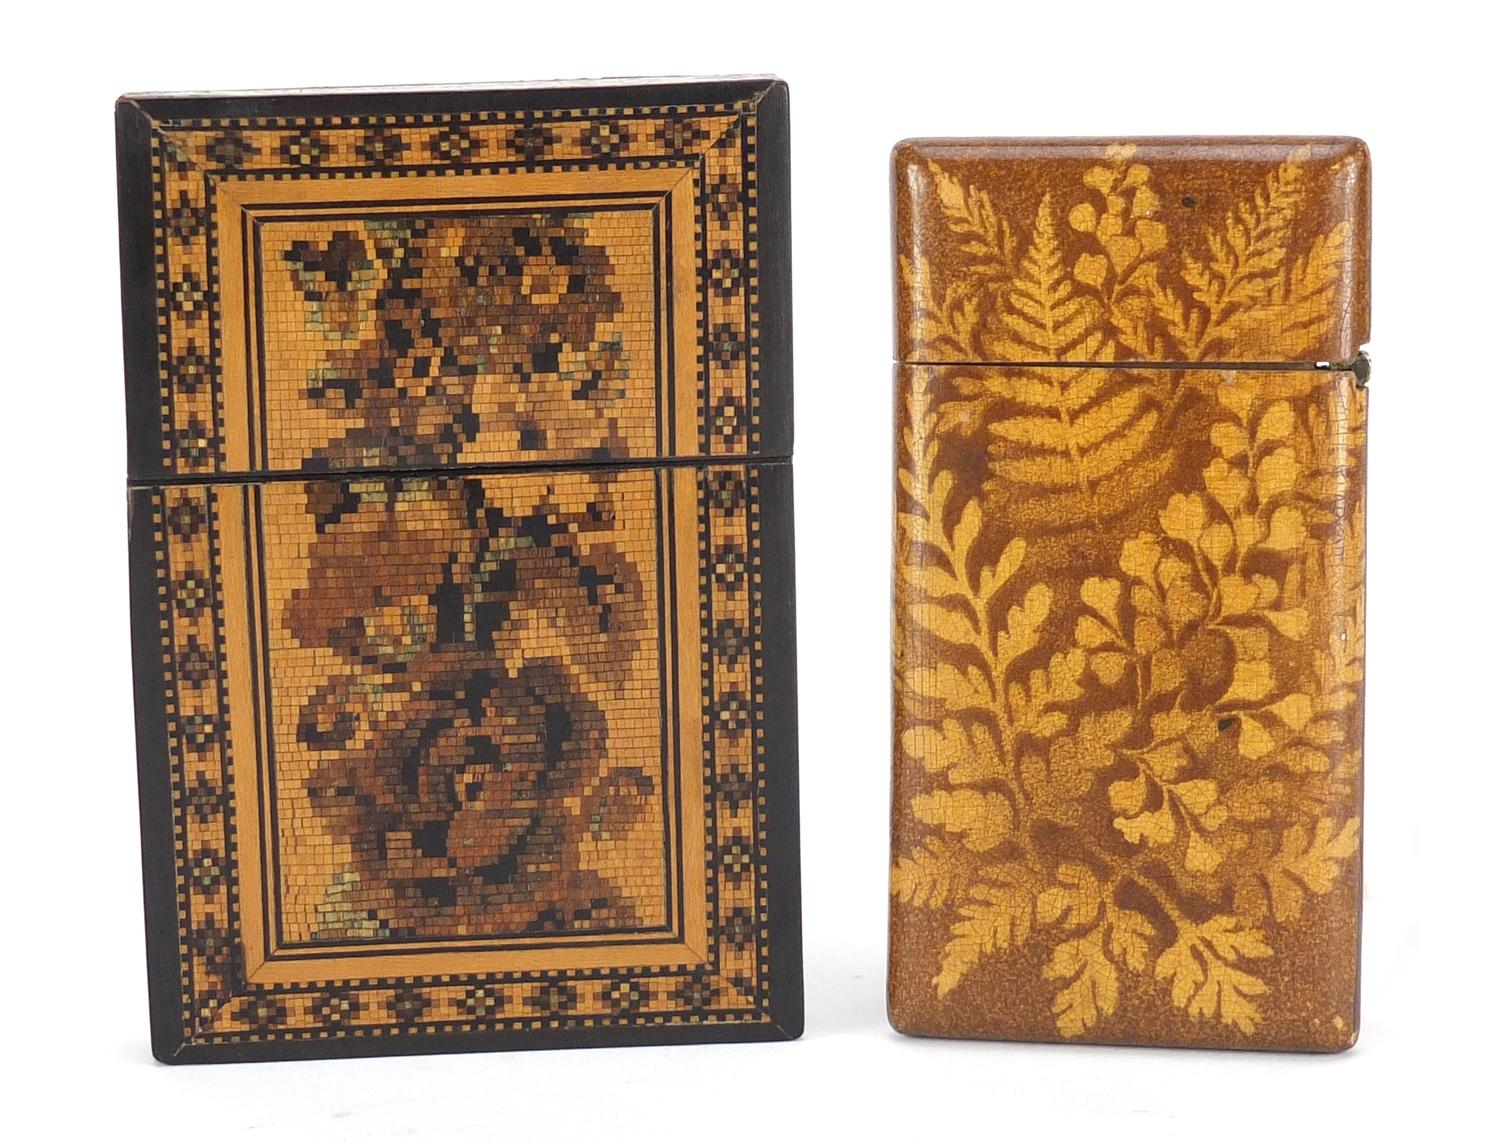 Lot 33 - Two Victorian calling card cases including a Tunbridge Ware example with micro mosaic inlay, the